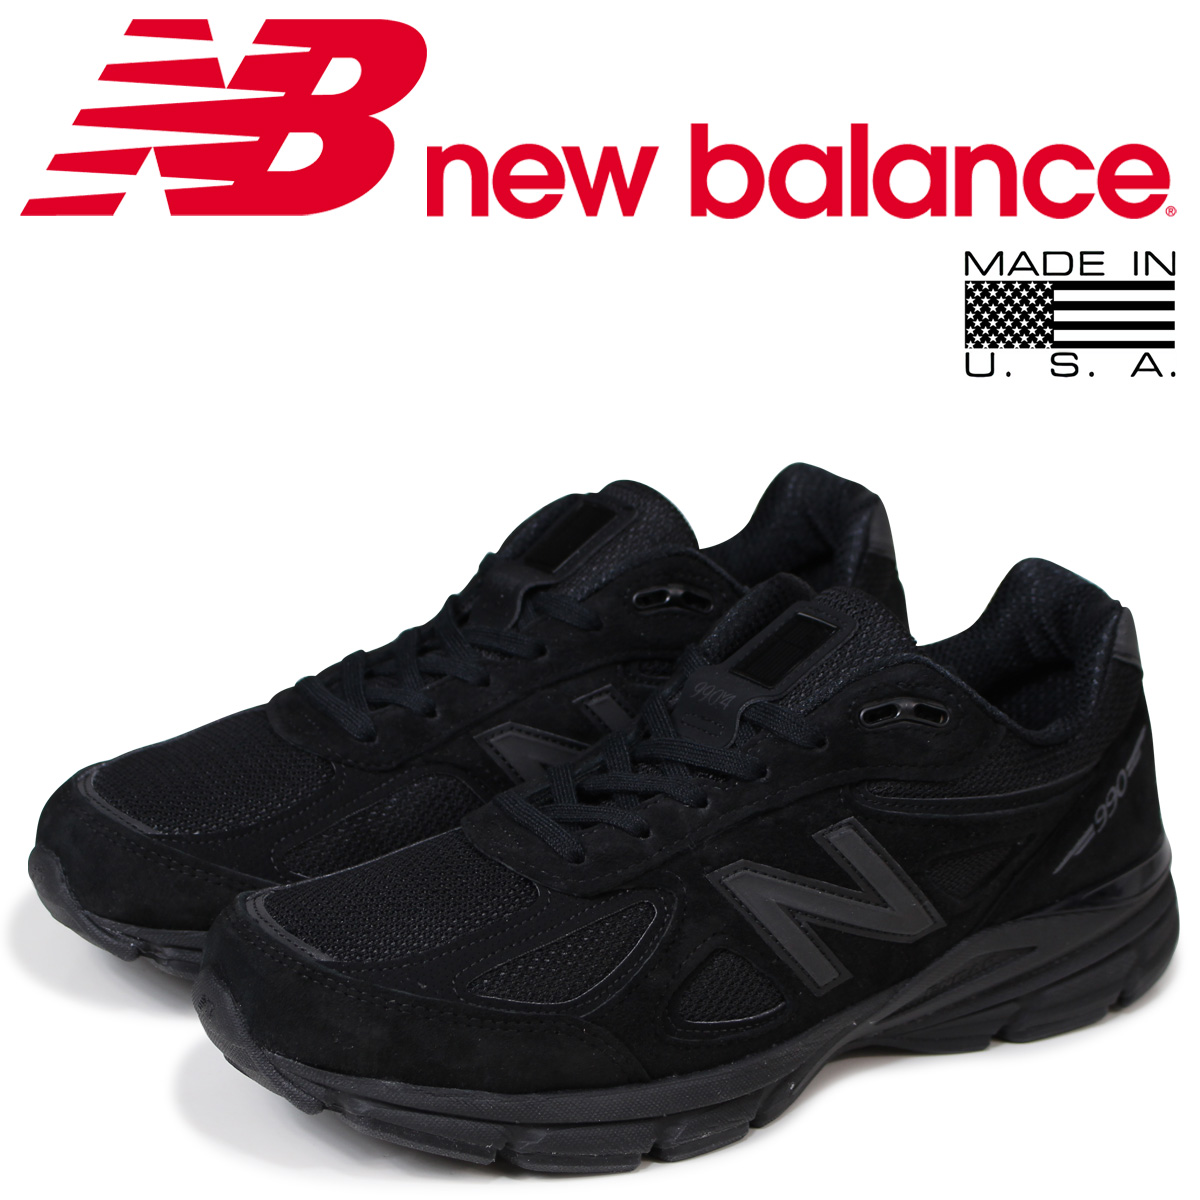 64a50d1689d new balance 990 men's New Balance sneakers M990BB4 D Wise MADE IN USA shoes  black black [the 8/16 additional arrival]